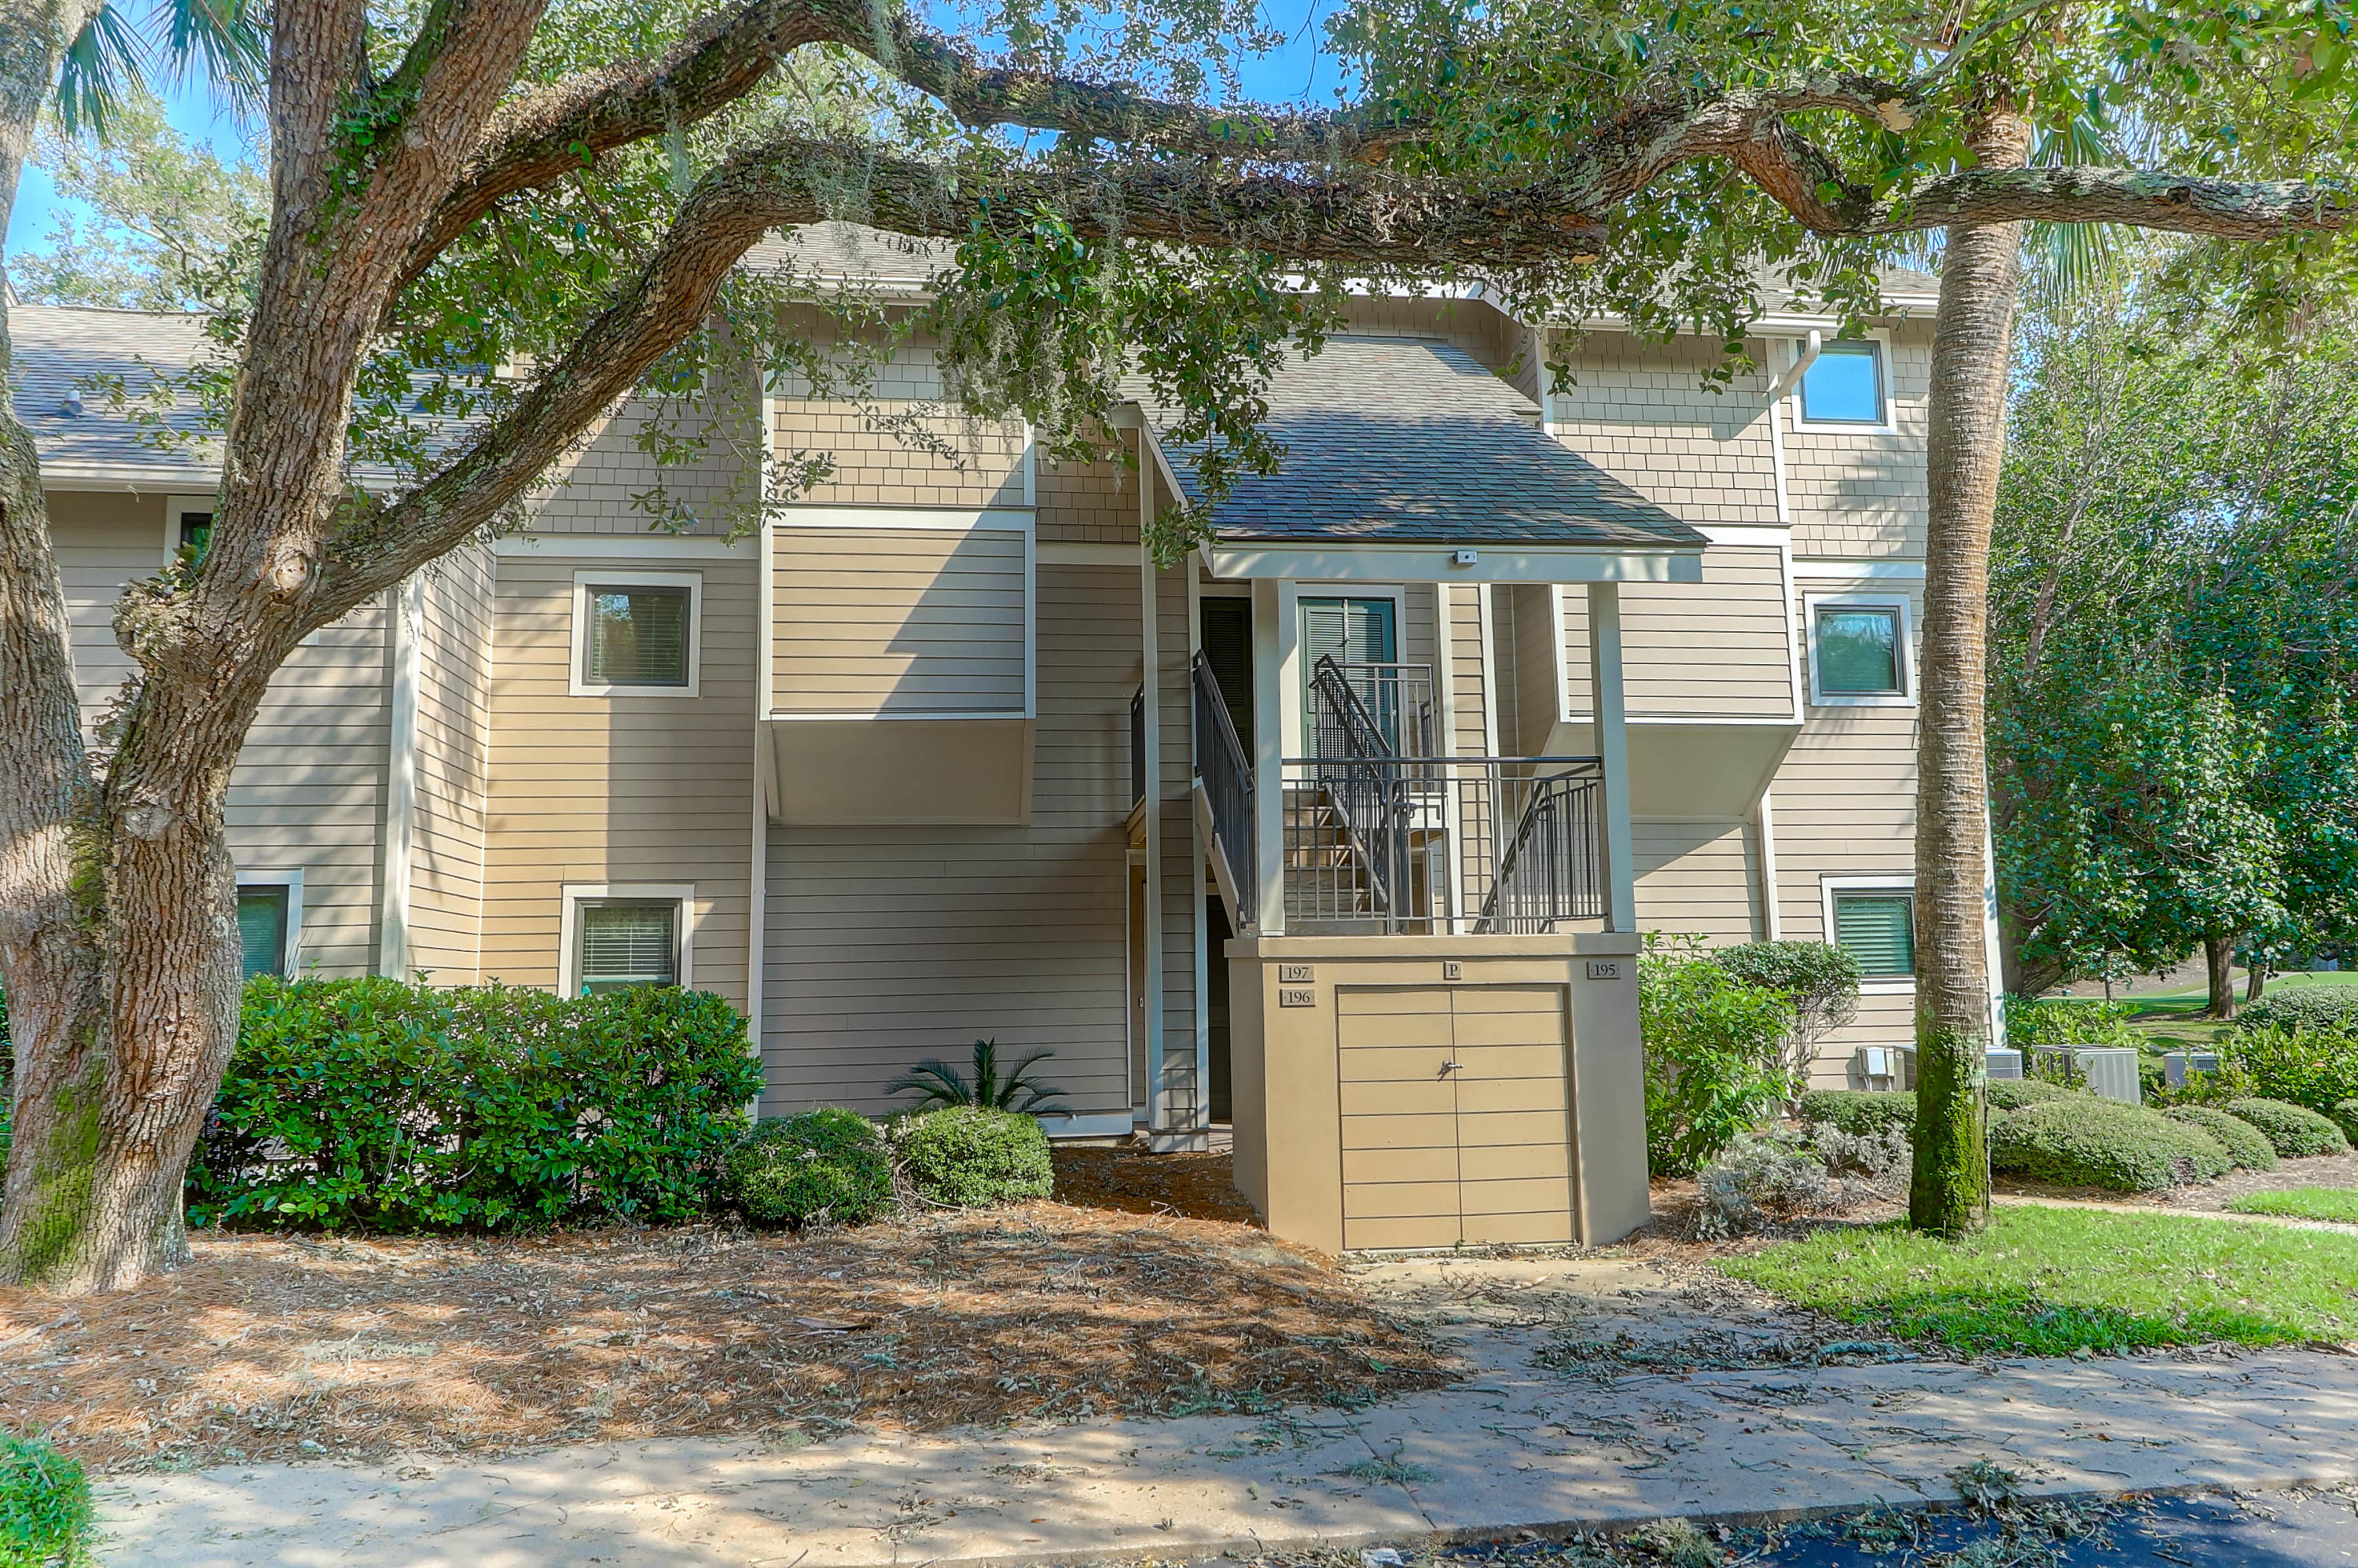 197 High Hammock Villas Seabrook Island, Sc 29455